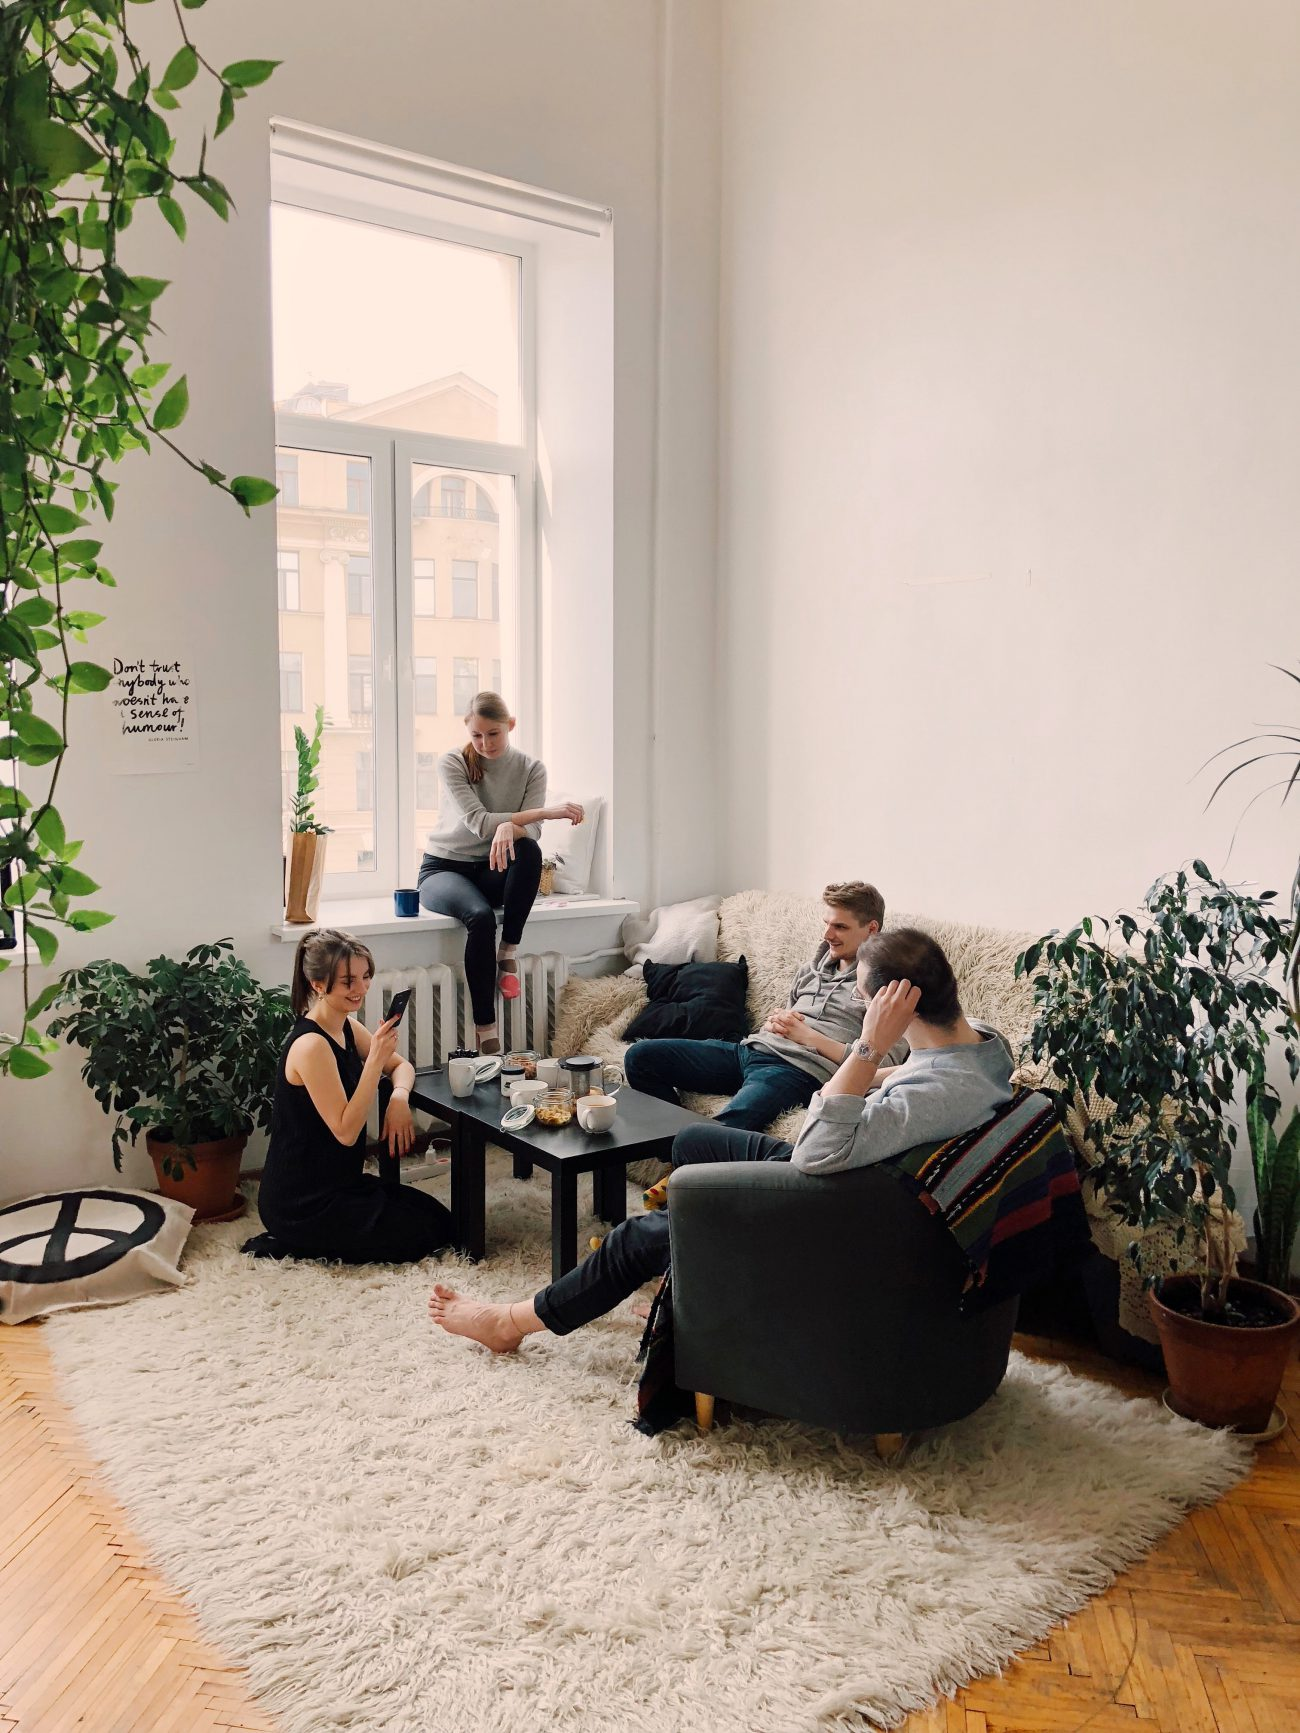 Do I need extra insurance for renting on AirBnB